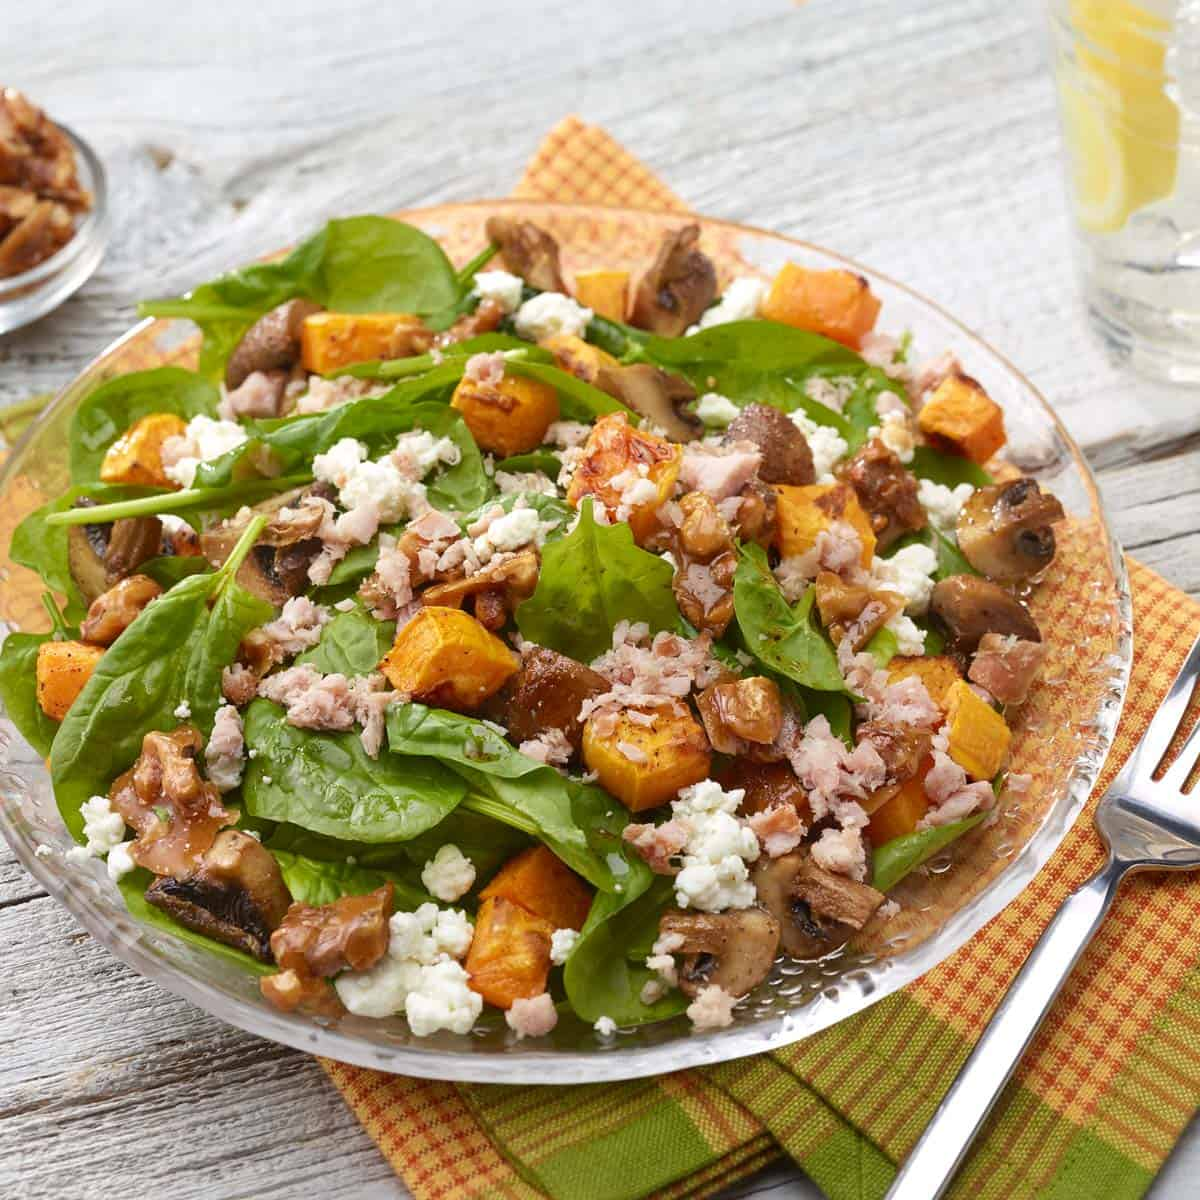 Roasted buttrnut squash and mushroom spinach salad in a glass bowl